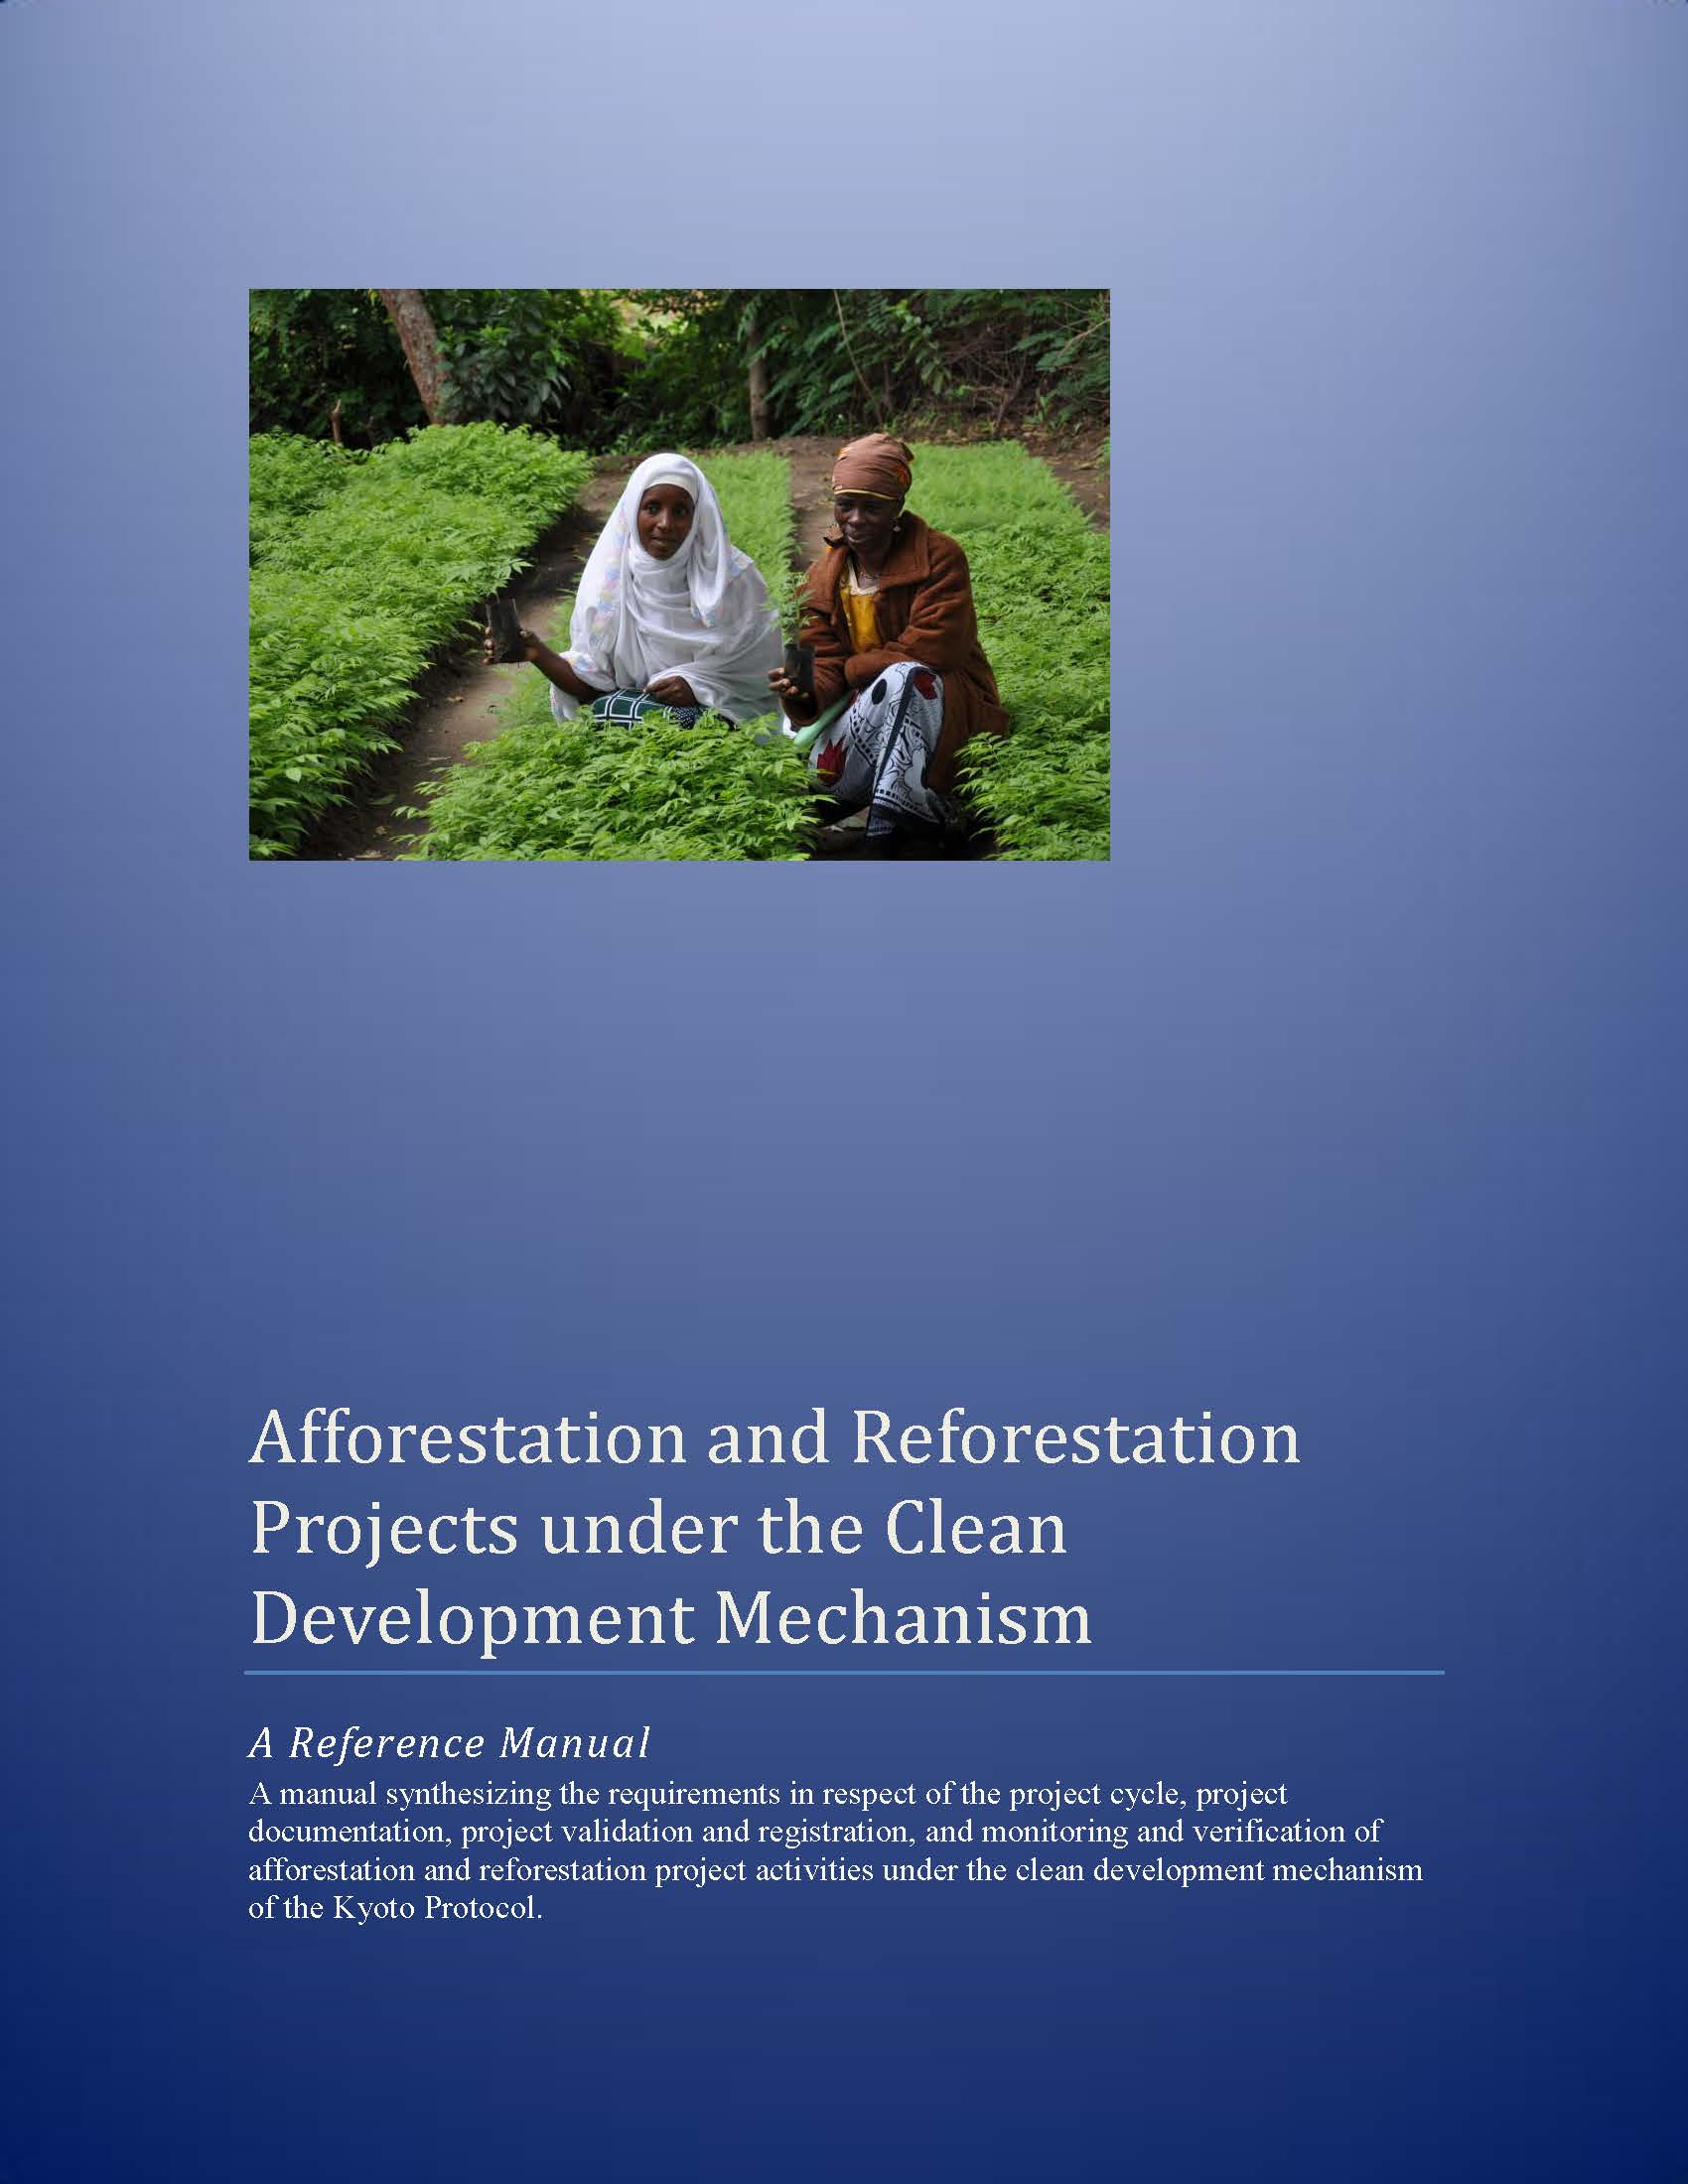 Capa da Afforestation and Reforestation Projects under the Clean Development Mechanism